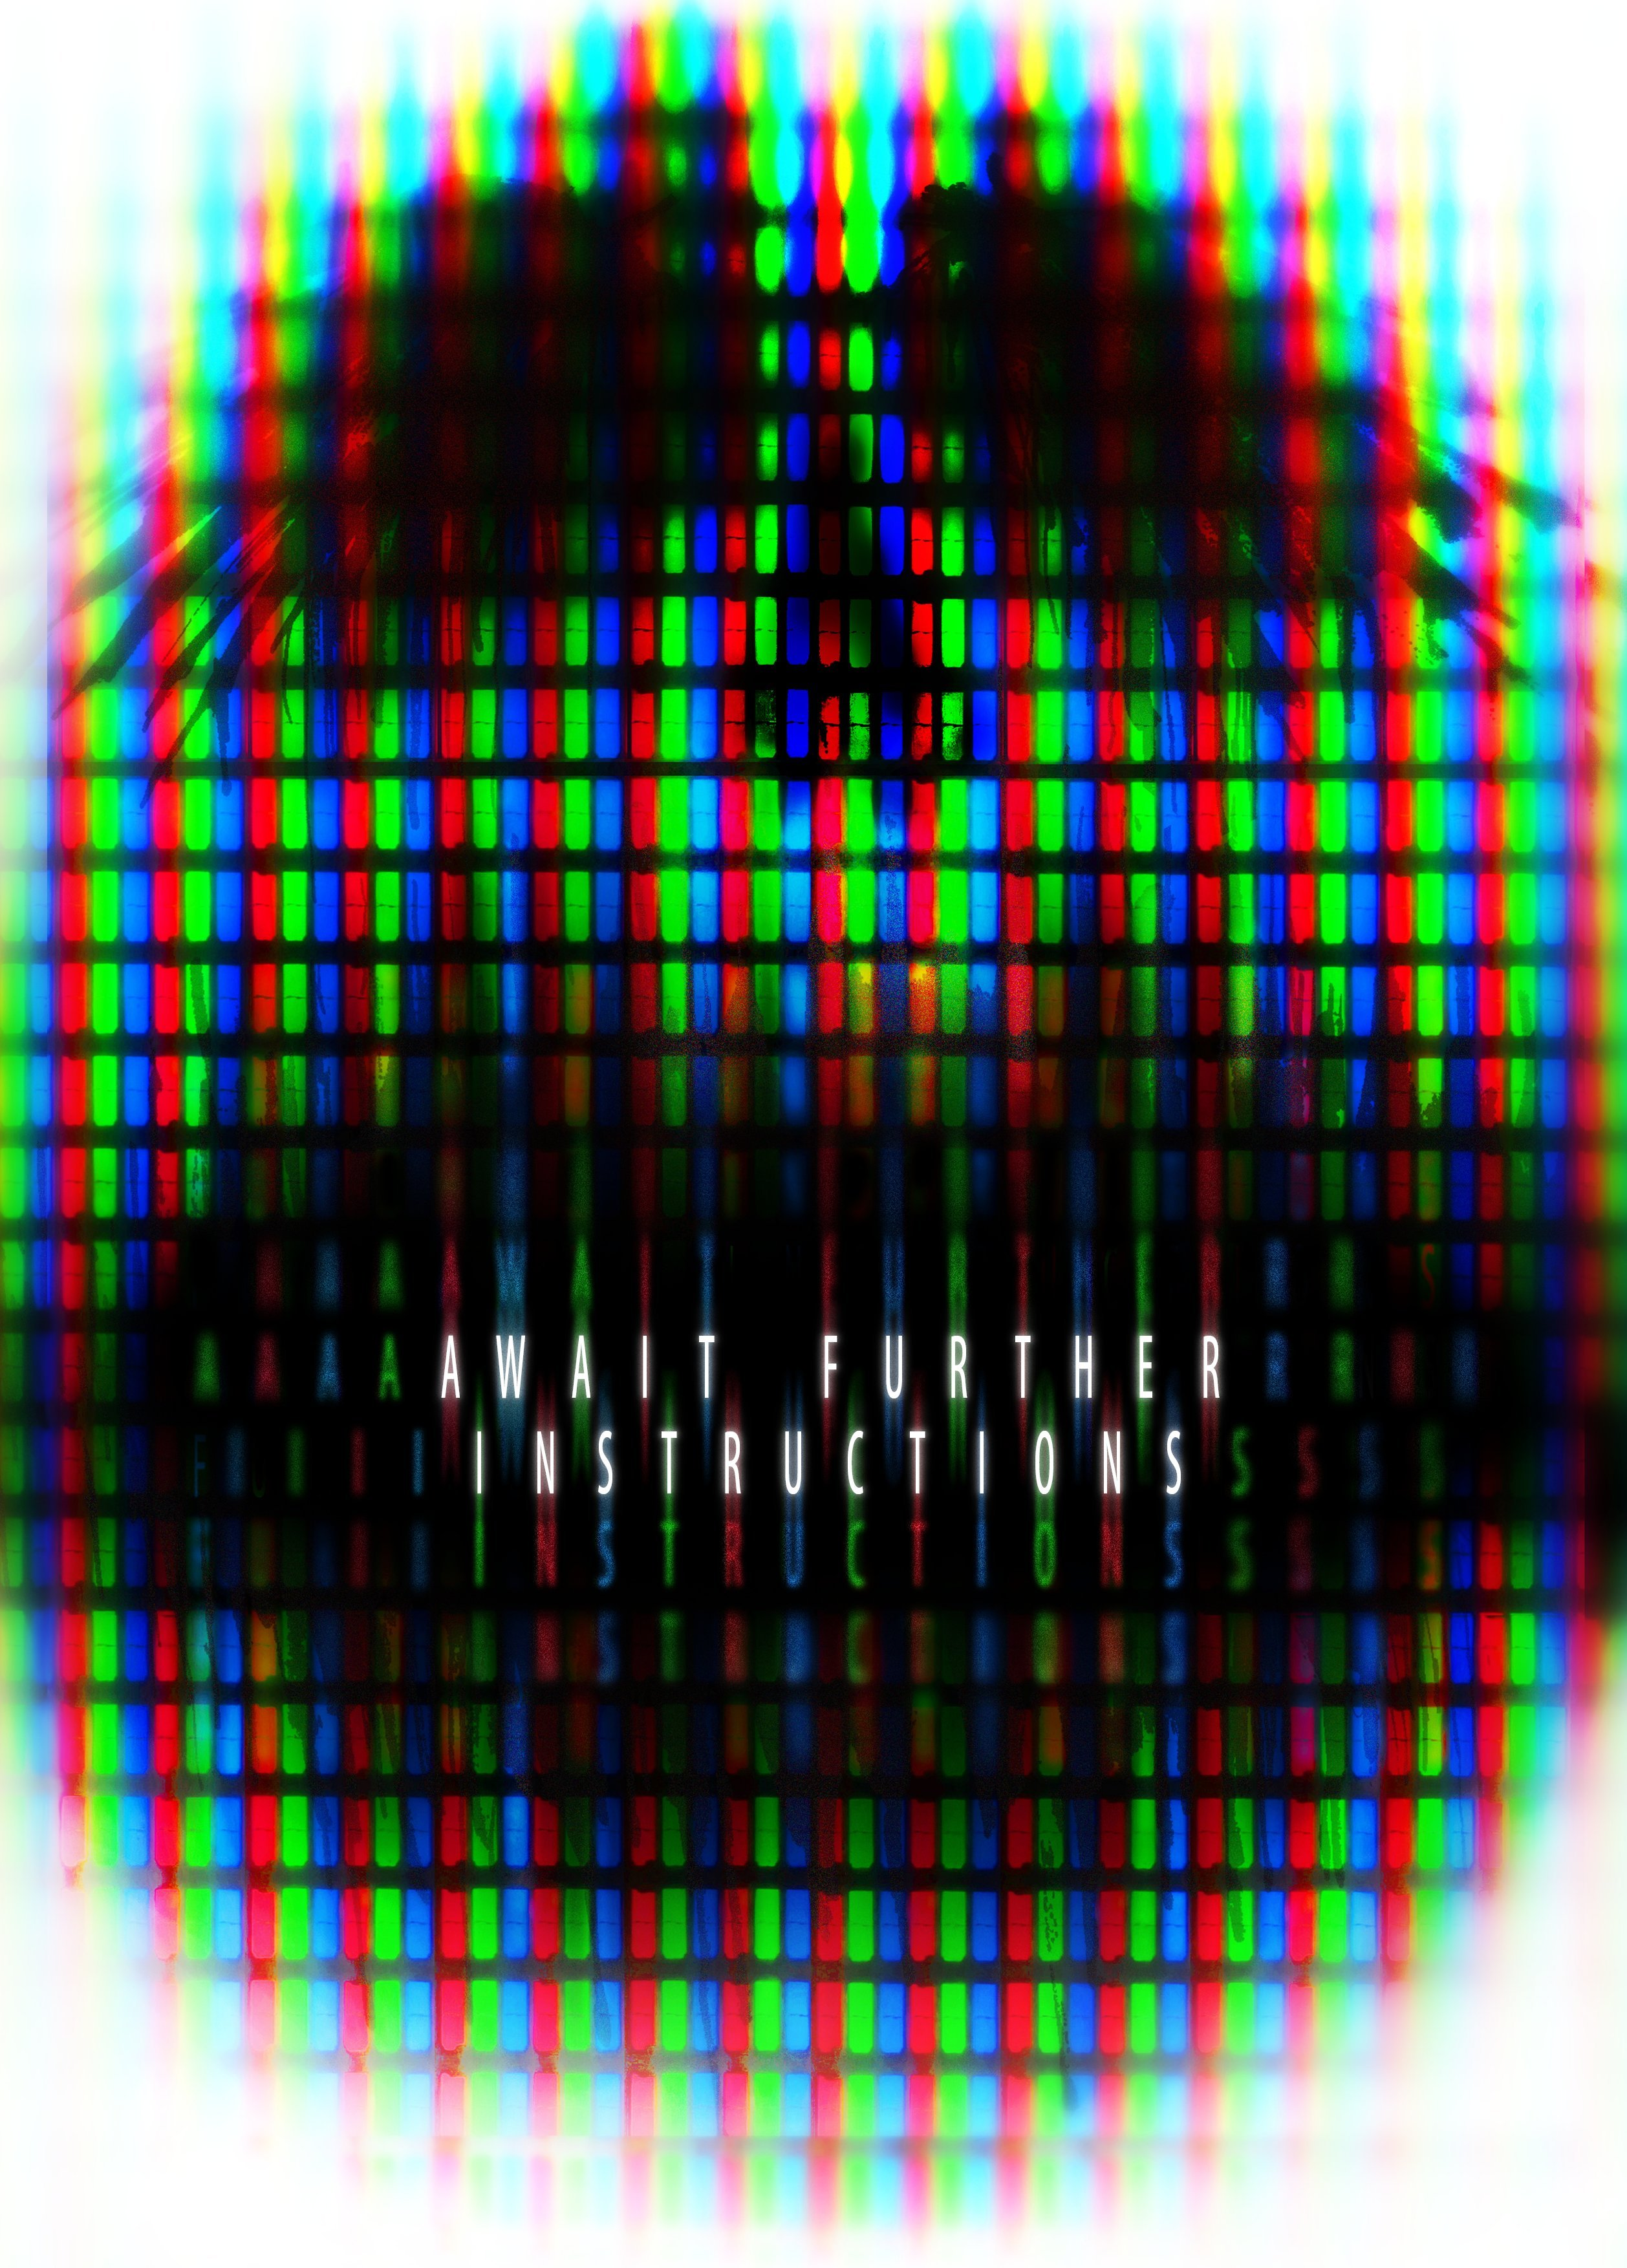 ?Await Further Instructions? wins Audience Award at Cinepocalypse Film Festival 2018